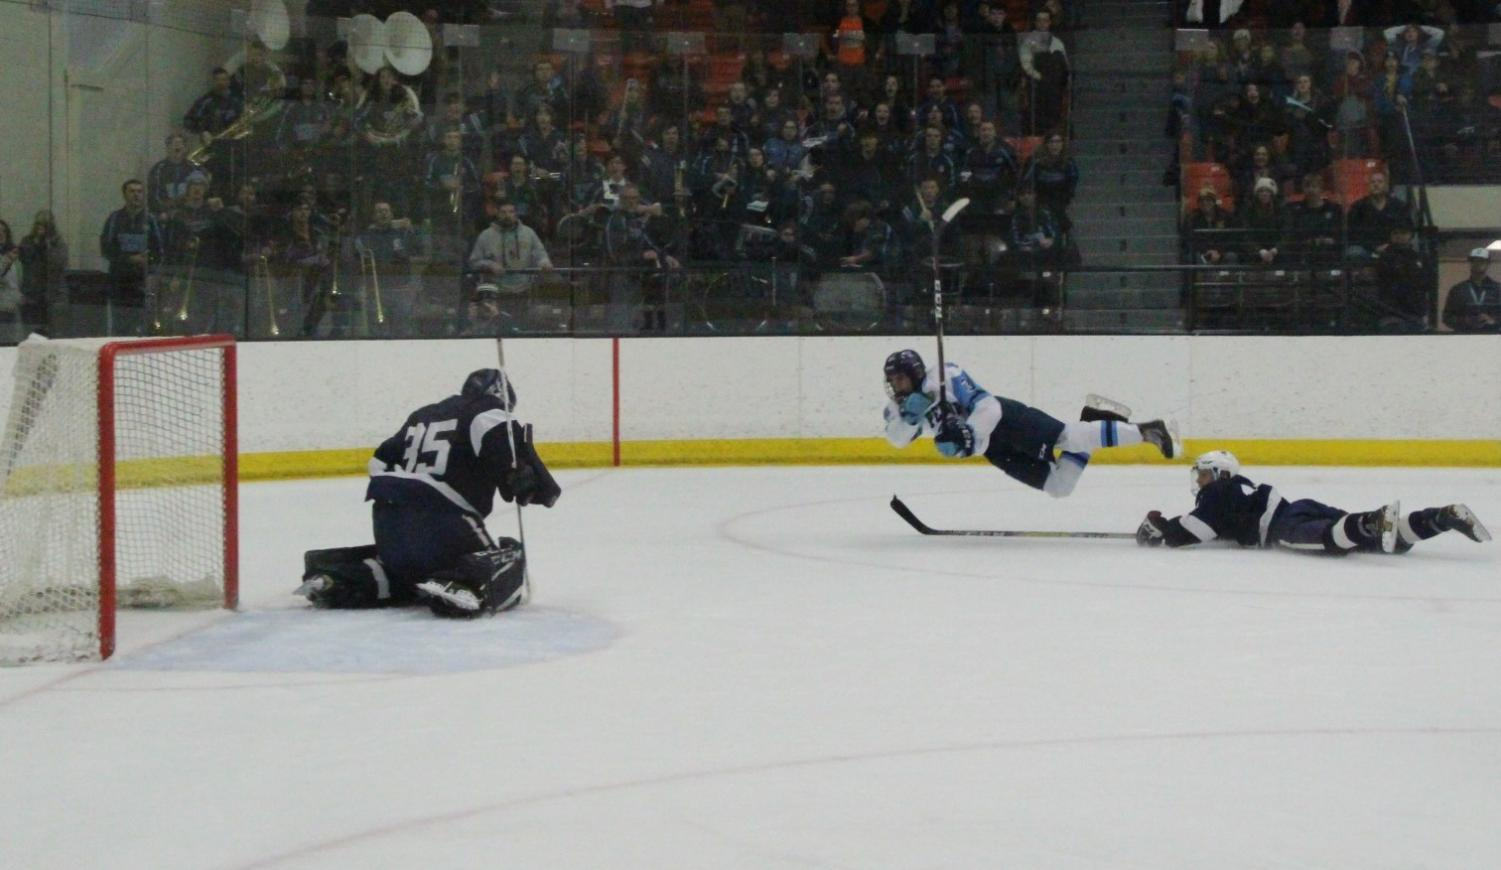 Junior Kobe Hansen attempts a shot on goal late in the first OT period against Hudson in the WIAA Section 1 final at Wessman Arena tonight. Hudson defeated Superior 2-1 in double OT, advancing to the State Tournament and ending the season for Superior.